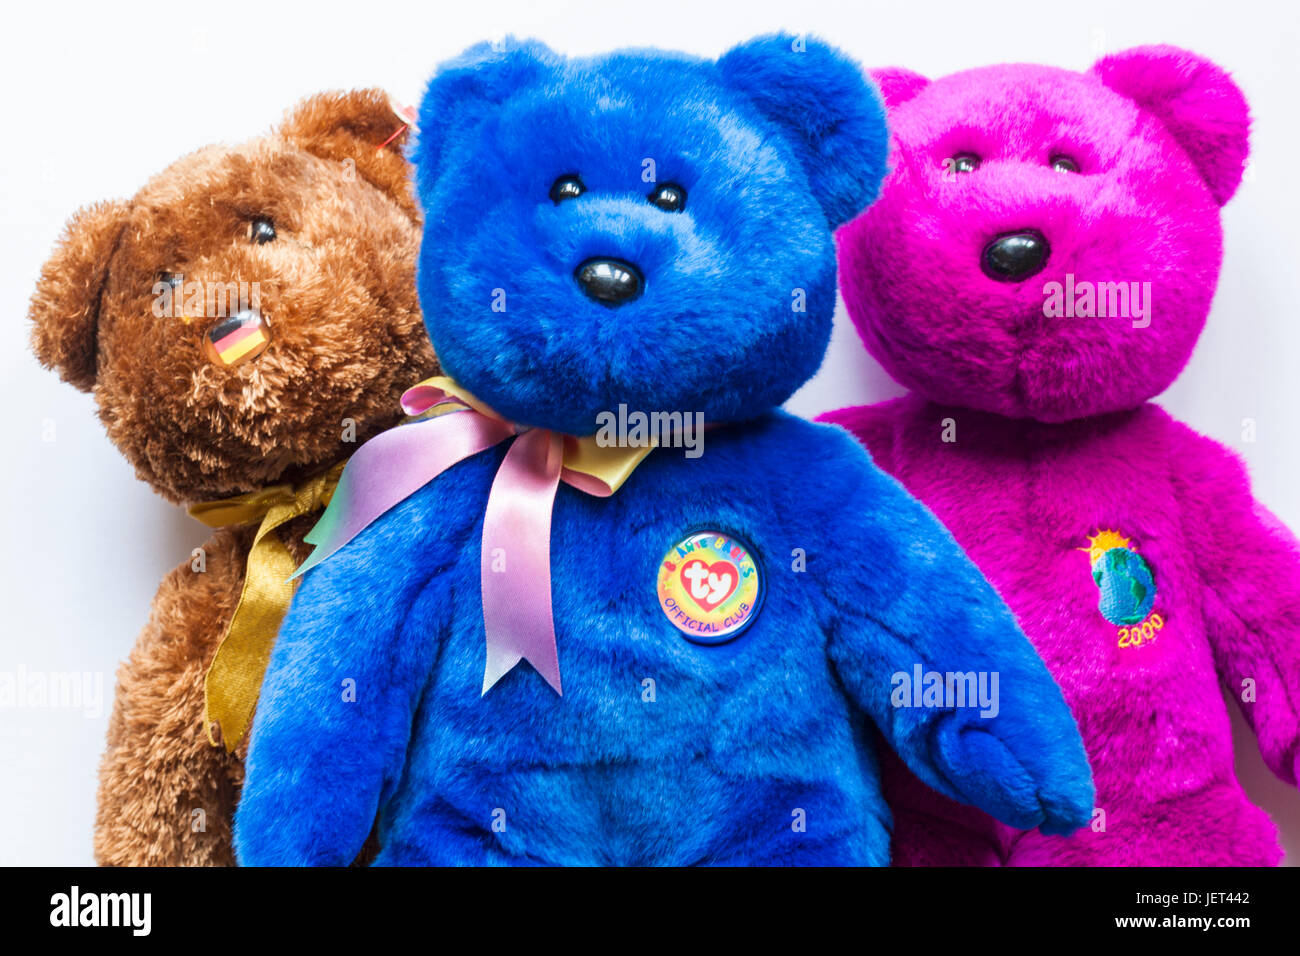 fb41fdeb61c Ty Beanie Babies Stock Photos   Ty Beanie Babies Stock Images - Alamy